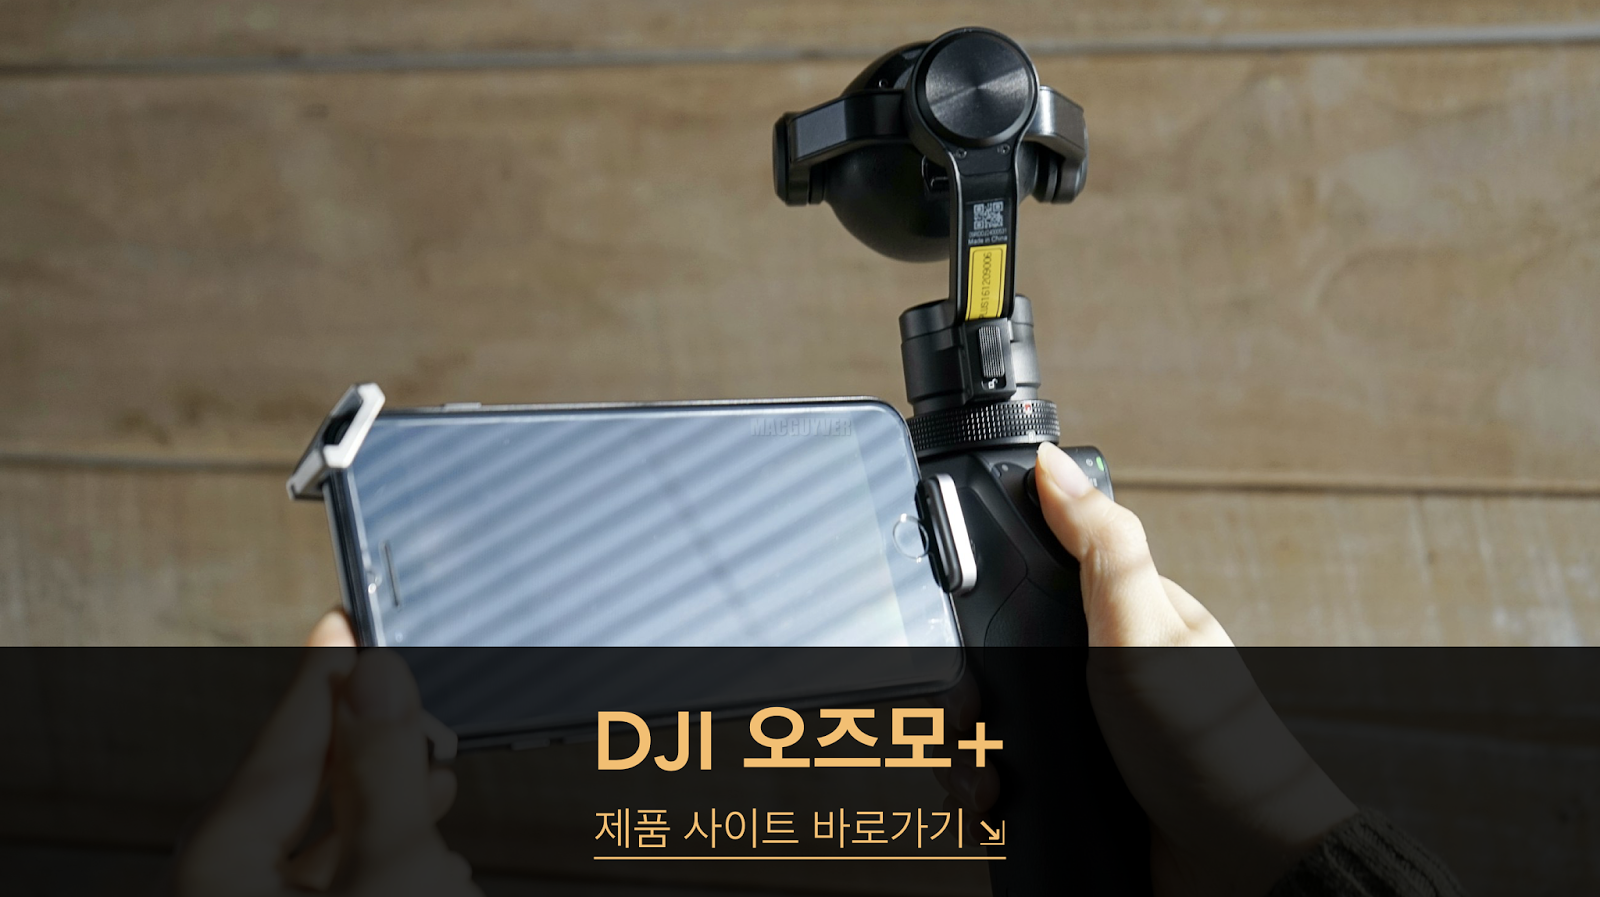 http://store.dji.com/kr/product/osmo